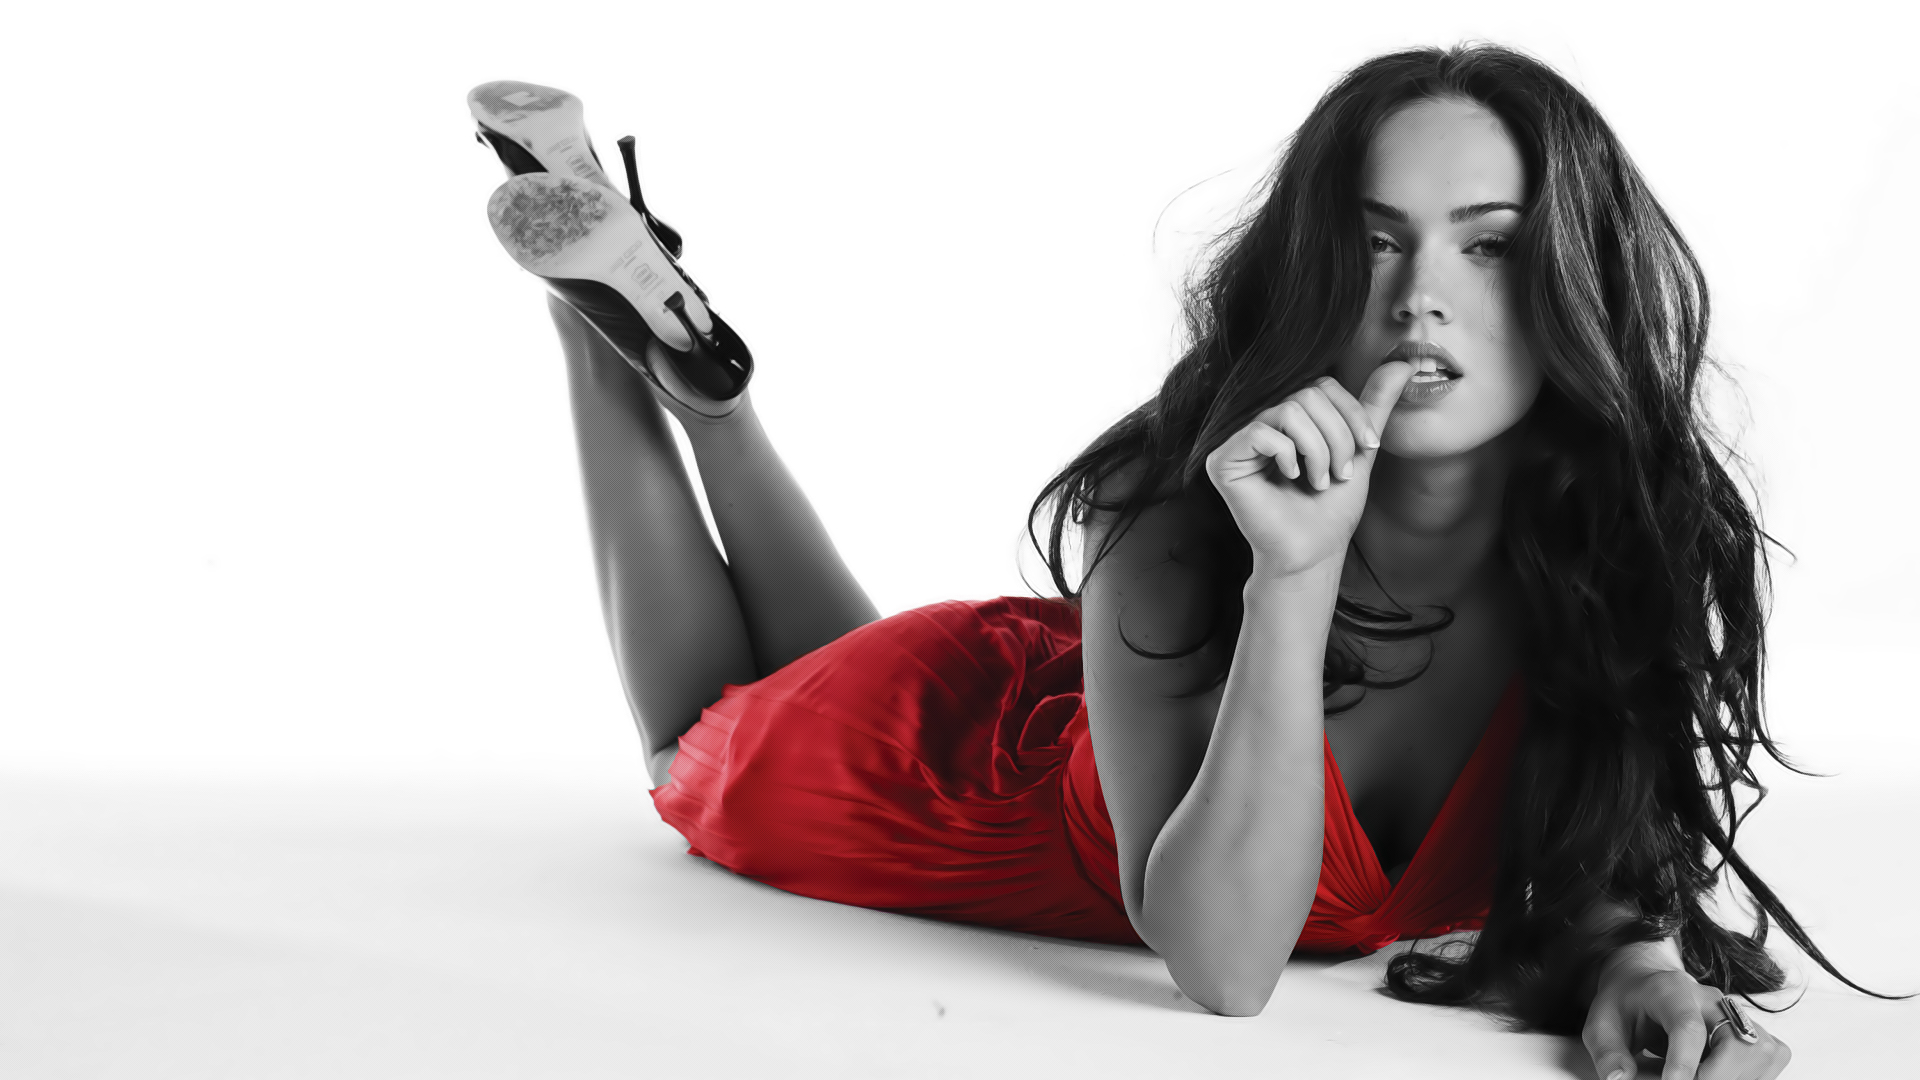 Megan_Fox_Wall_Lady_in_Red_by_m4riOS